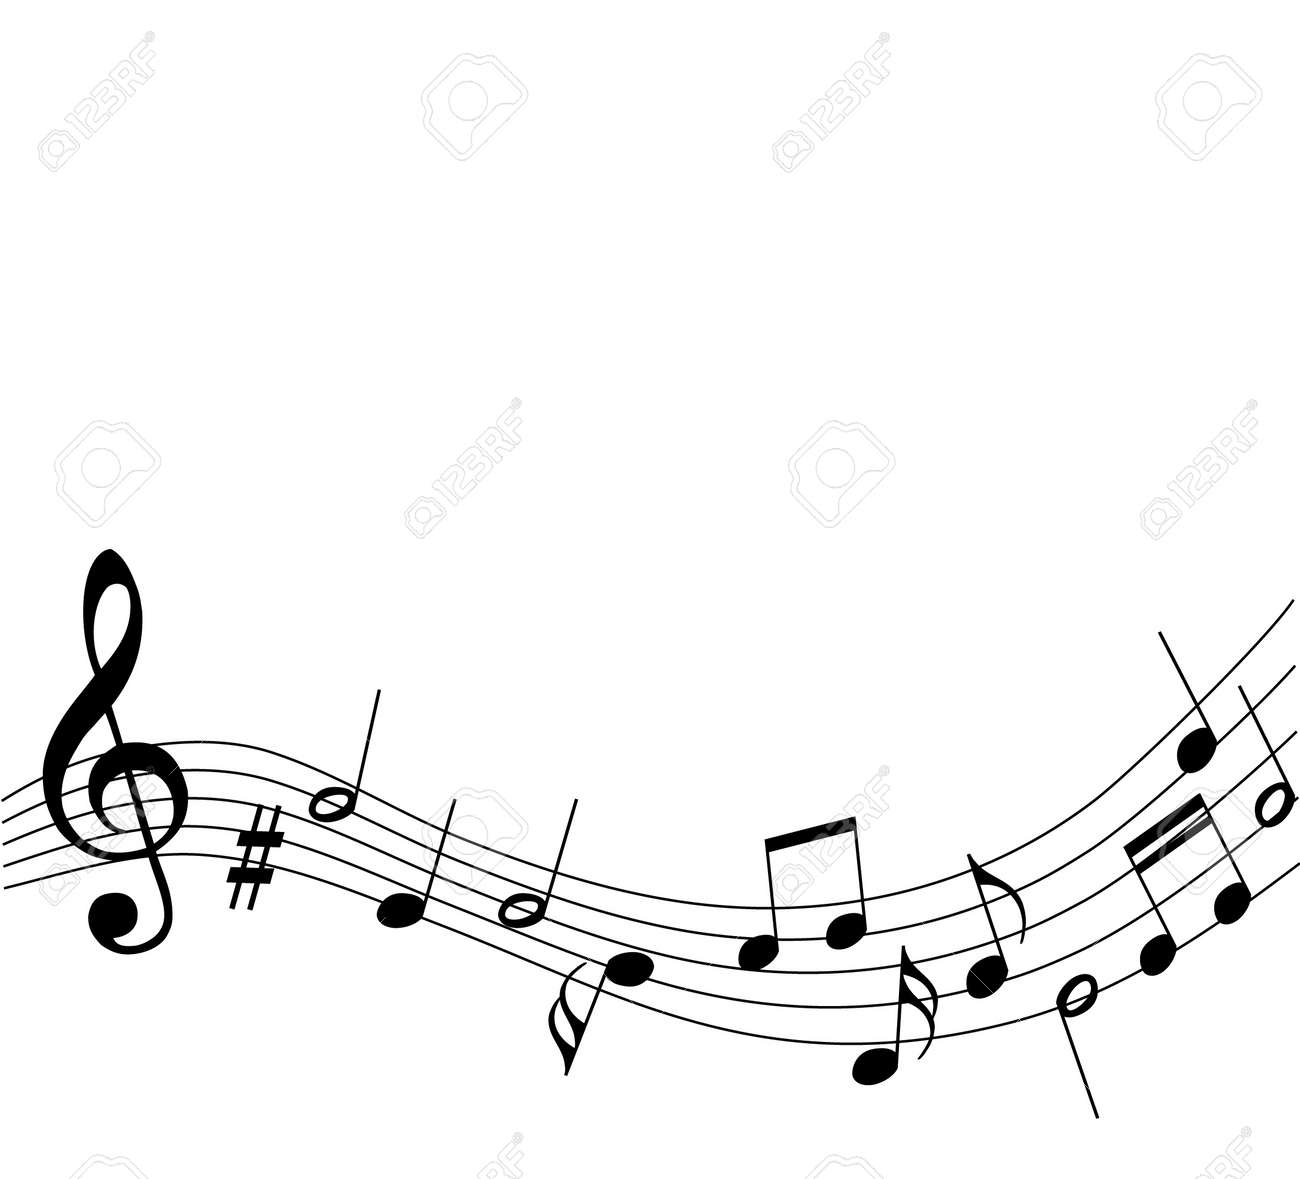 Music notes stock illustrations vectors clipart free image